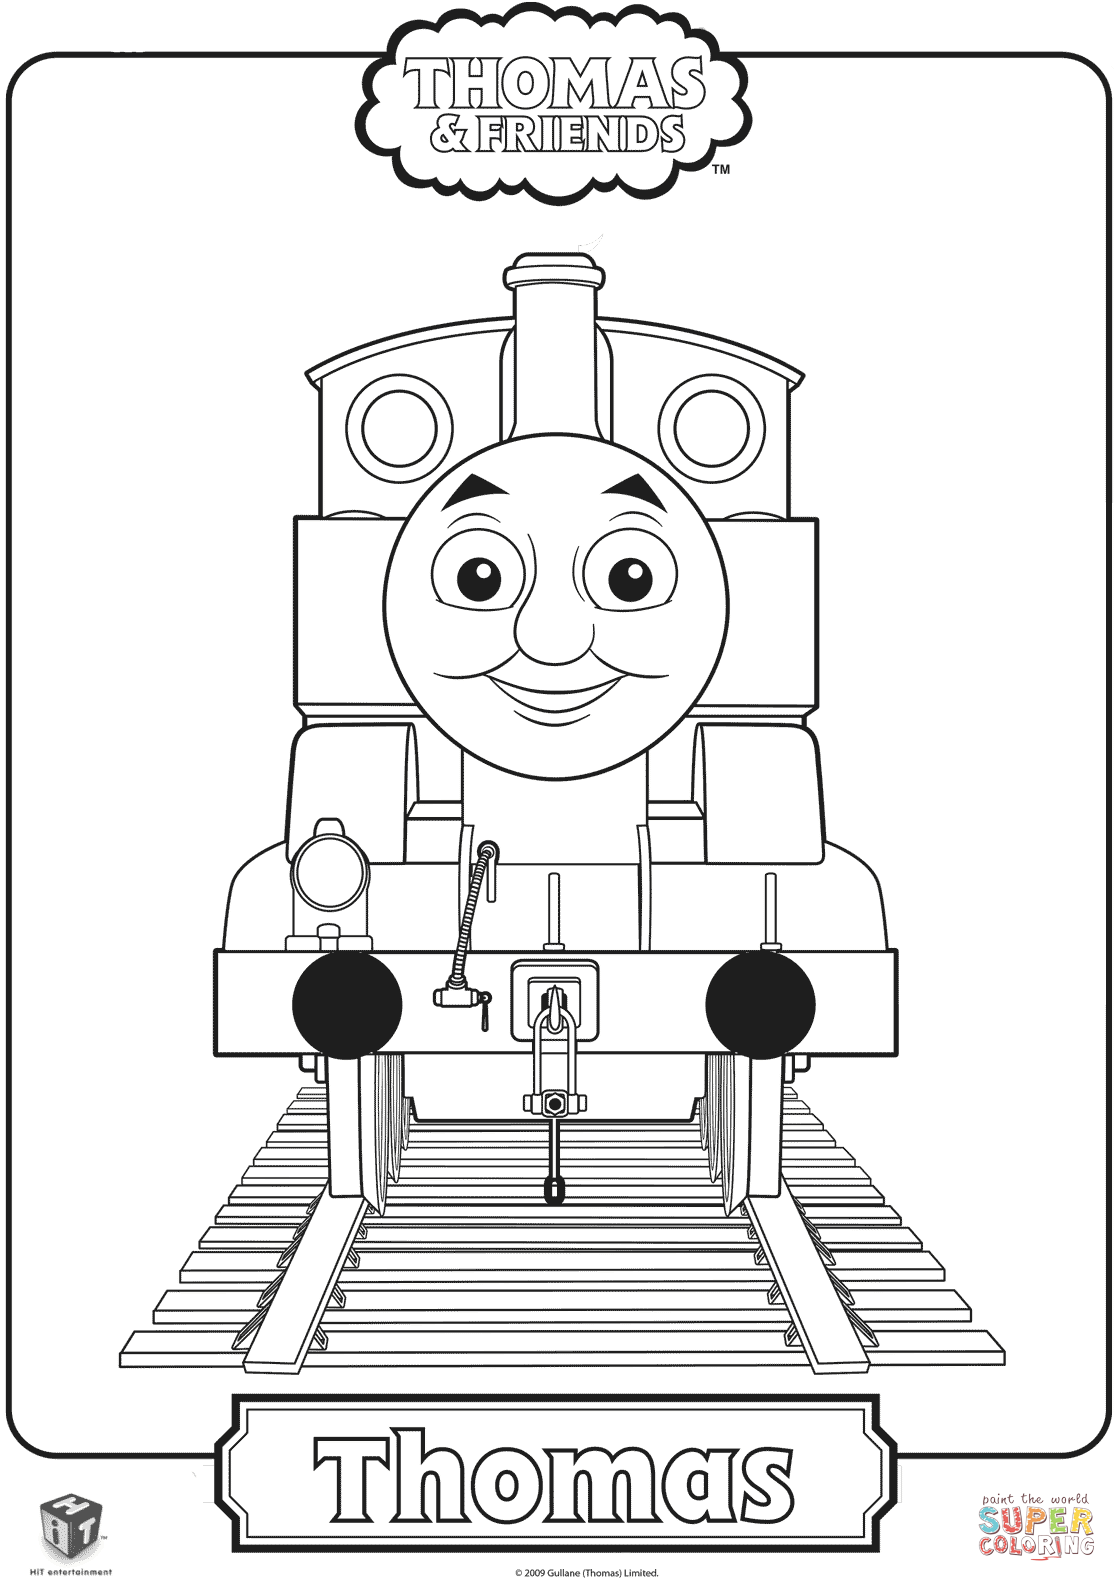 Click the thomas the train coloring pages